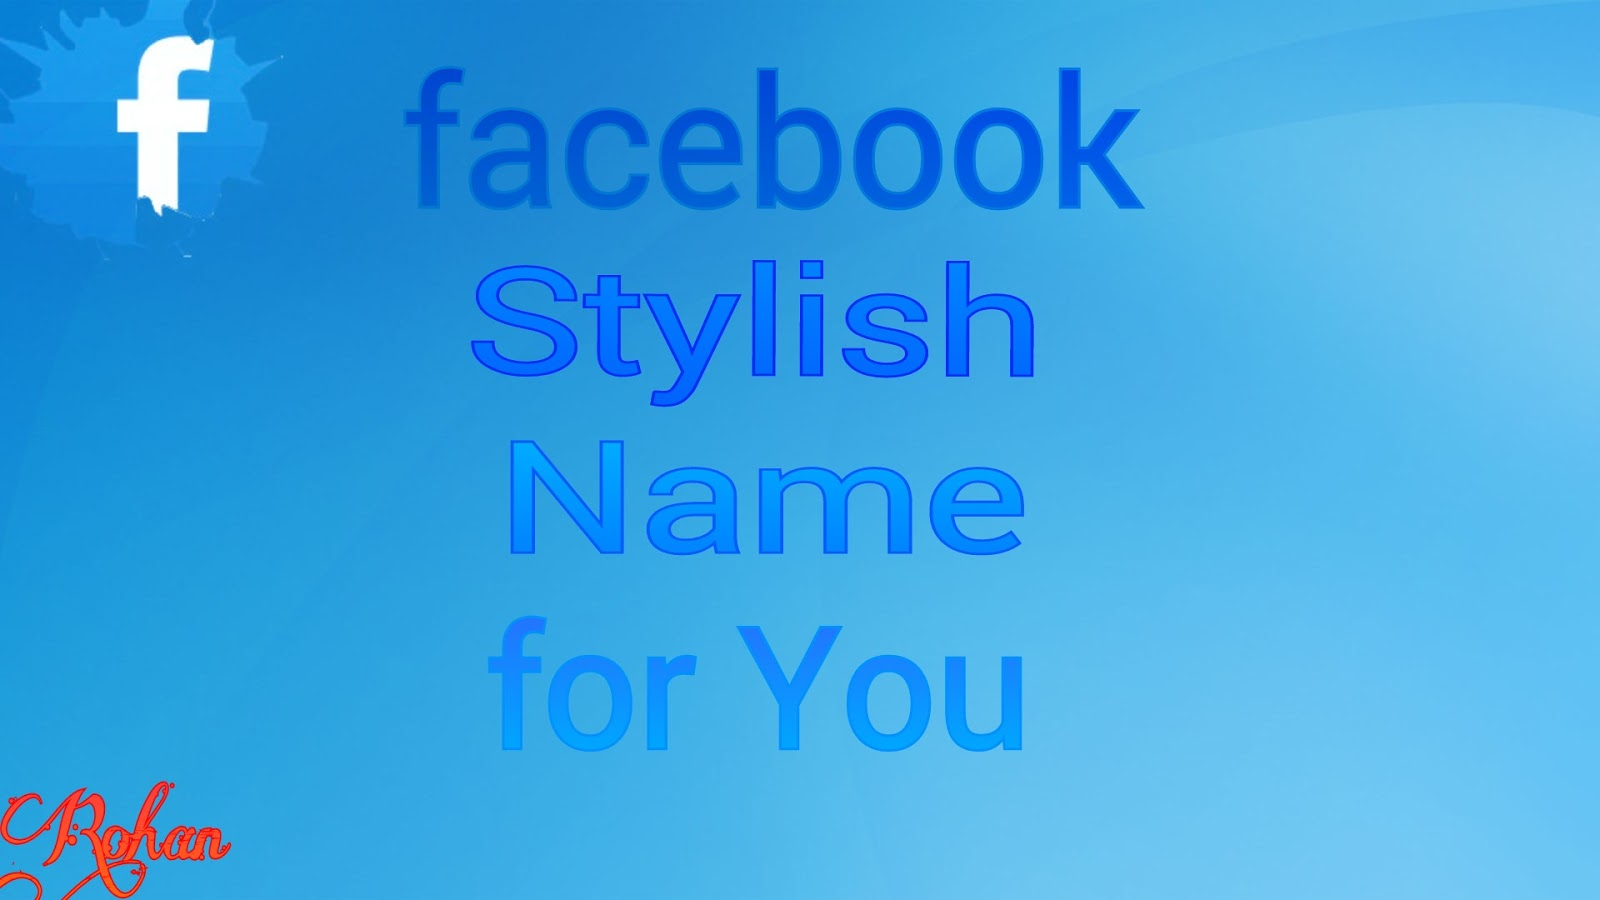 To acquire Name stylish facebook cover pictures trends